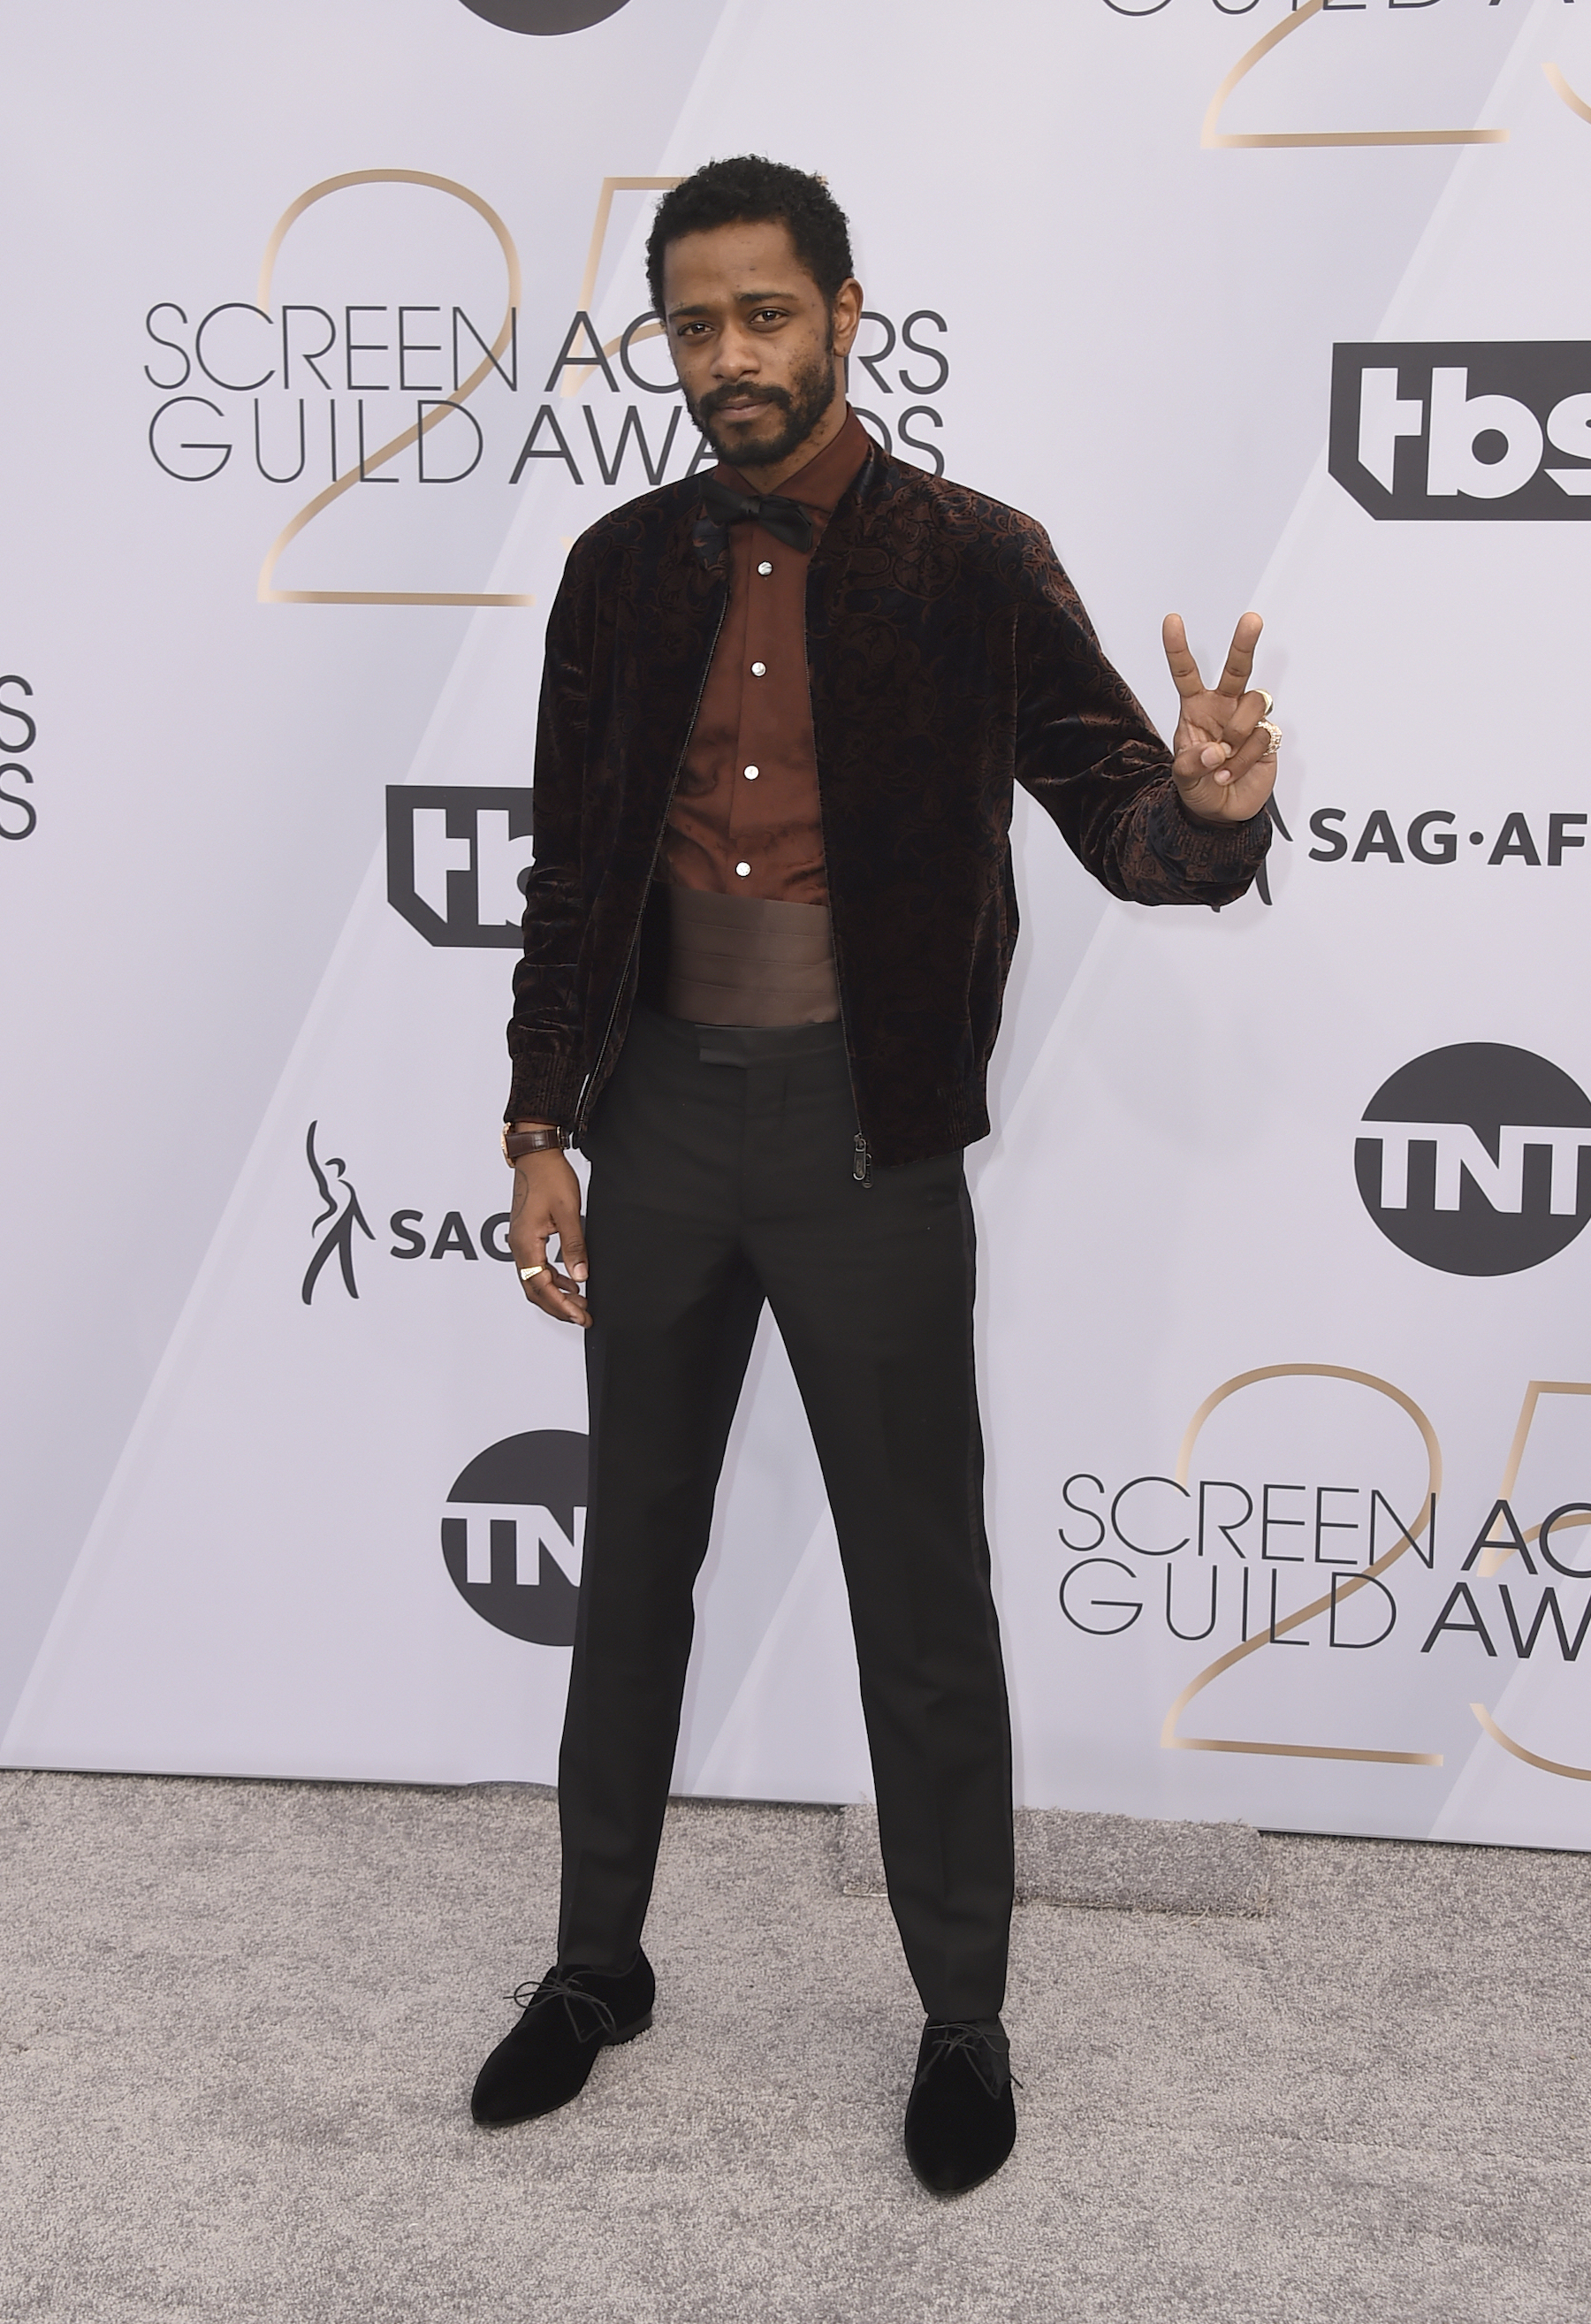 "<div class=""meta image-caption""><div class=""origin-logo origin-image ap""><span>AP</span></div><span class=""caption-text"">Lakeith Stanfield arrives at the 25th annual Screen Actors Guild Awards at the Shrine Auditorium & Expo Hall on Sunday, Jan. 27, 2019, in Los Angeles. (Jordan Strauss/Invision/AP)</span></div>"